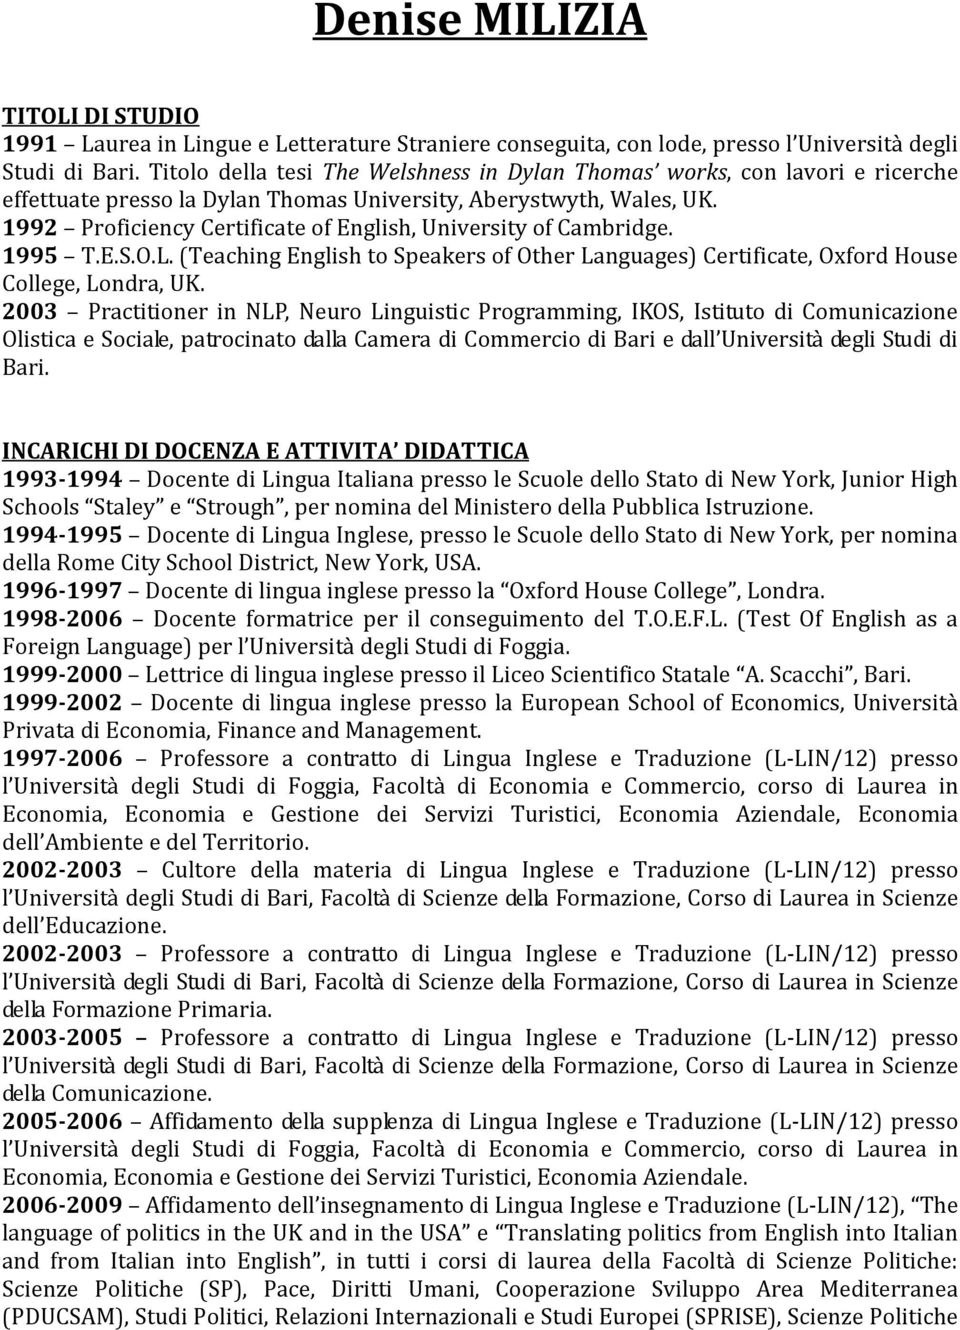 1992 Proficiency Certificate of English, University of Cambridge. 1995 T.E.S.O.L. (Teaching English to Speakers of Other Languages) Certificate, Oxford House College, Londra, UK.